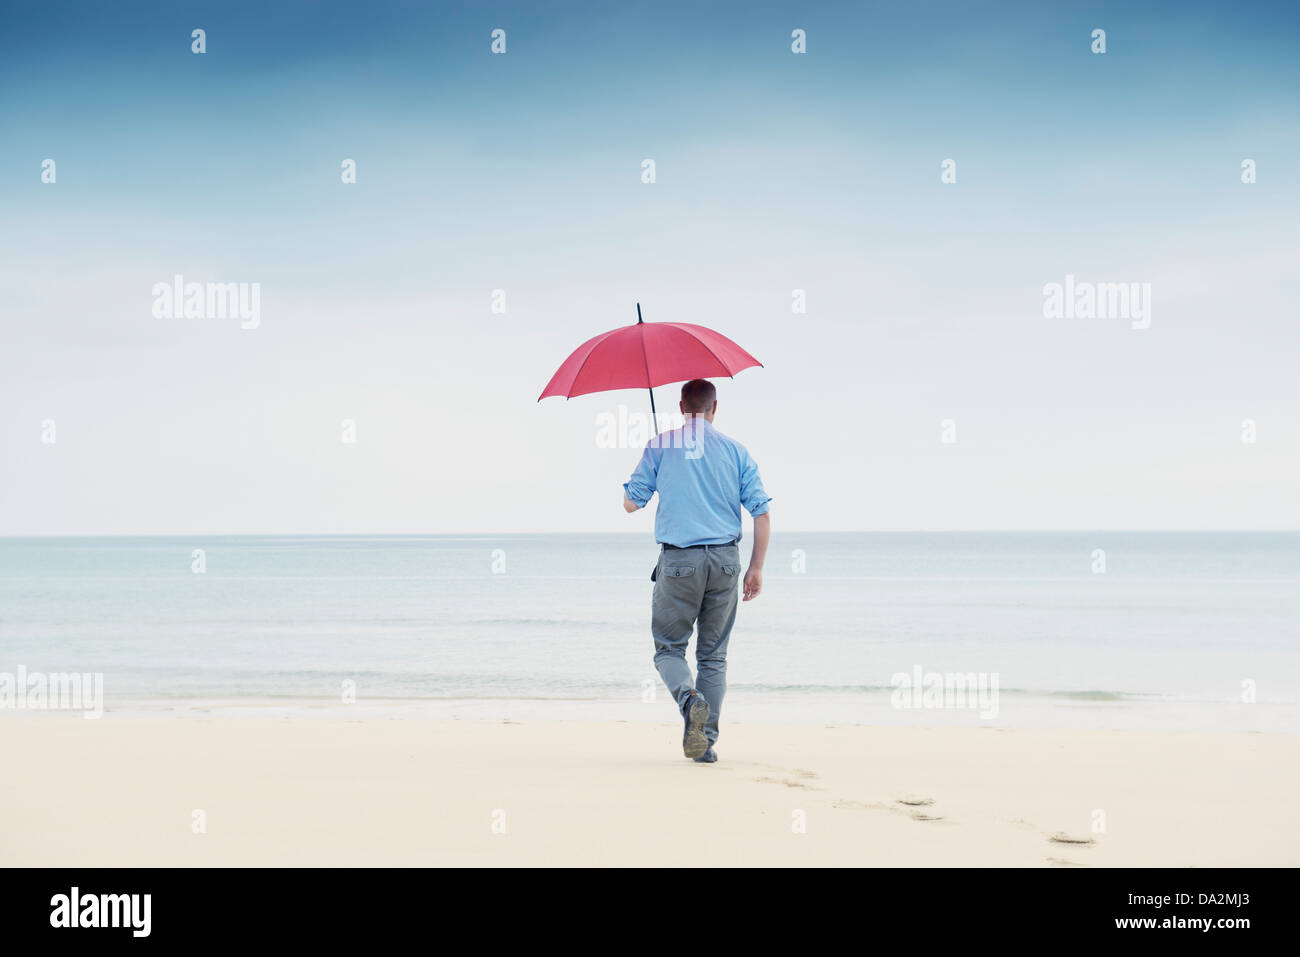 man walks across deserted beach towards calm sea while holding a red umbrella. get away from it all, contemplation, - Stock Image